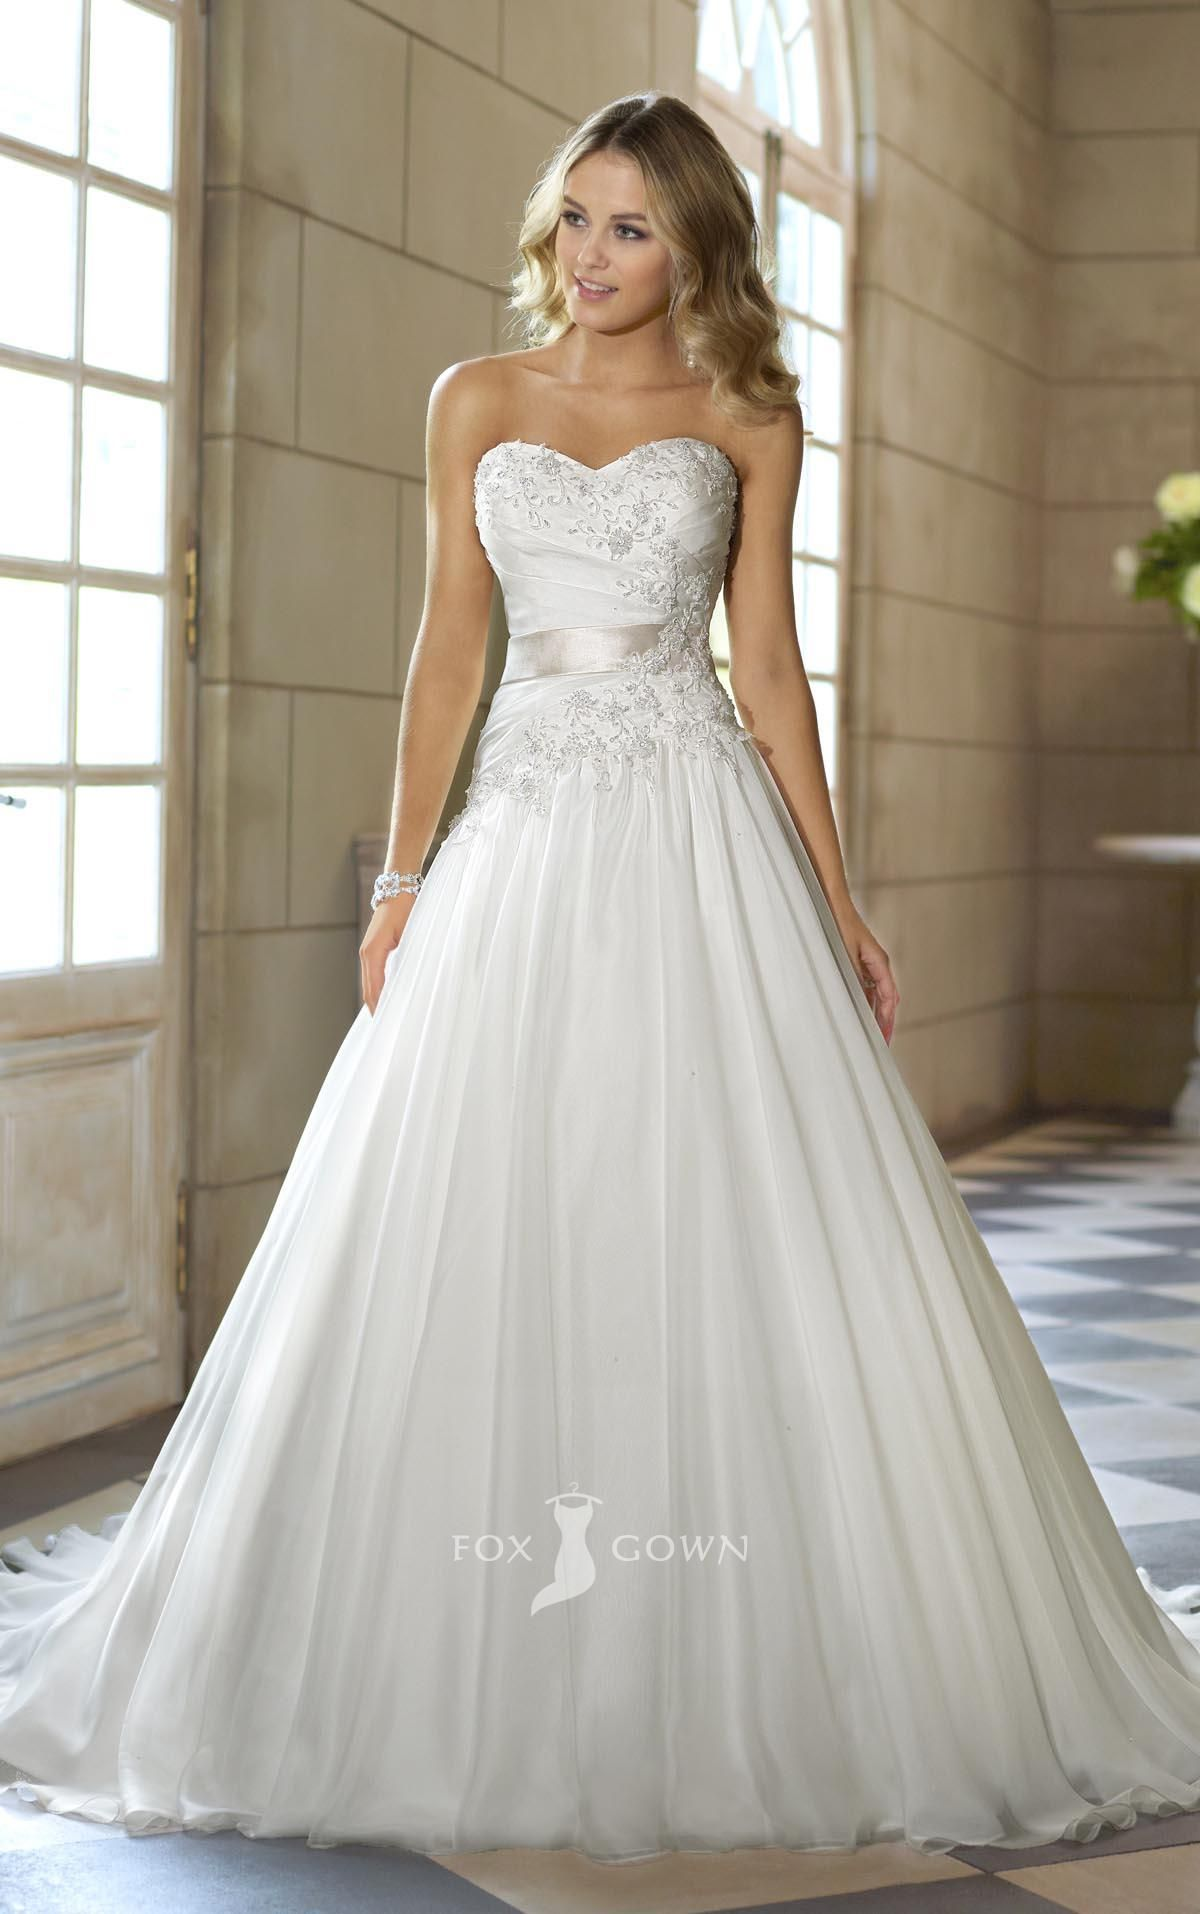 Lovely strapless sweetheart ball gown embroidered bodice wedding lovely strapless sweetheart ball gown embroidered bodice wedding dress love the top part ombrellifo Image collections